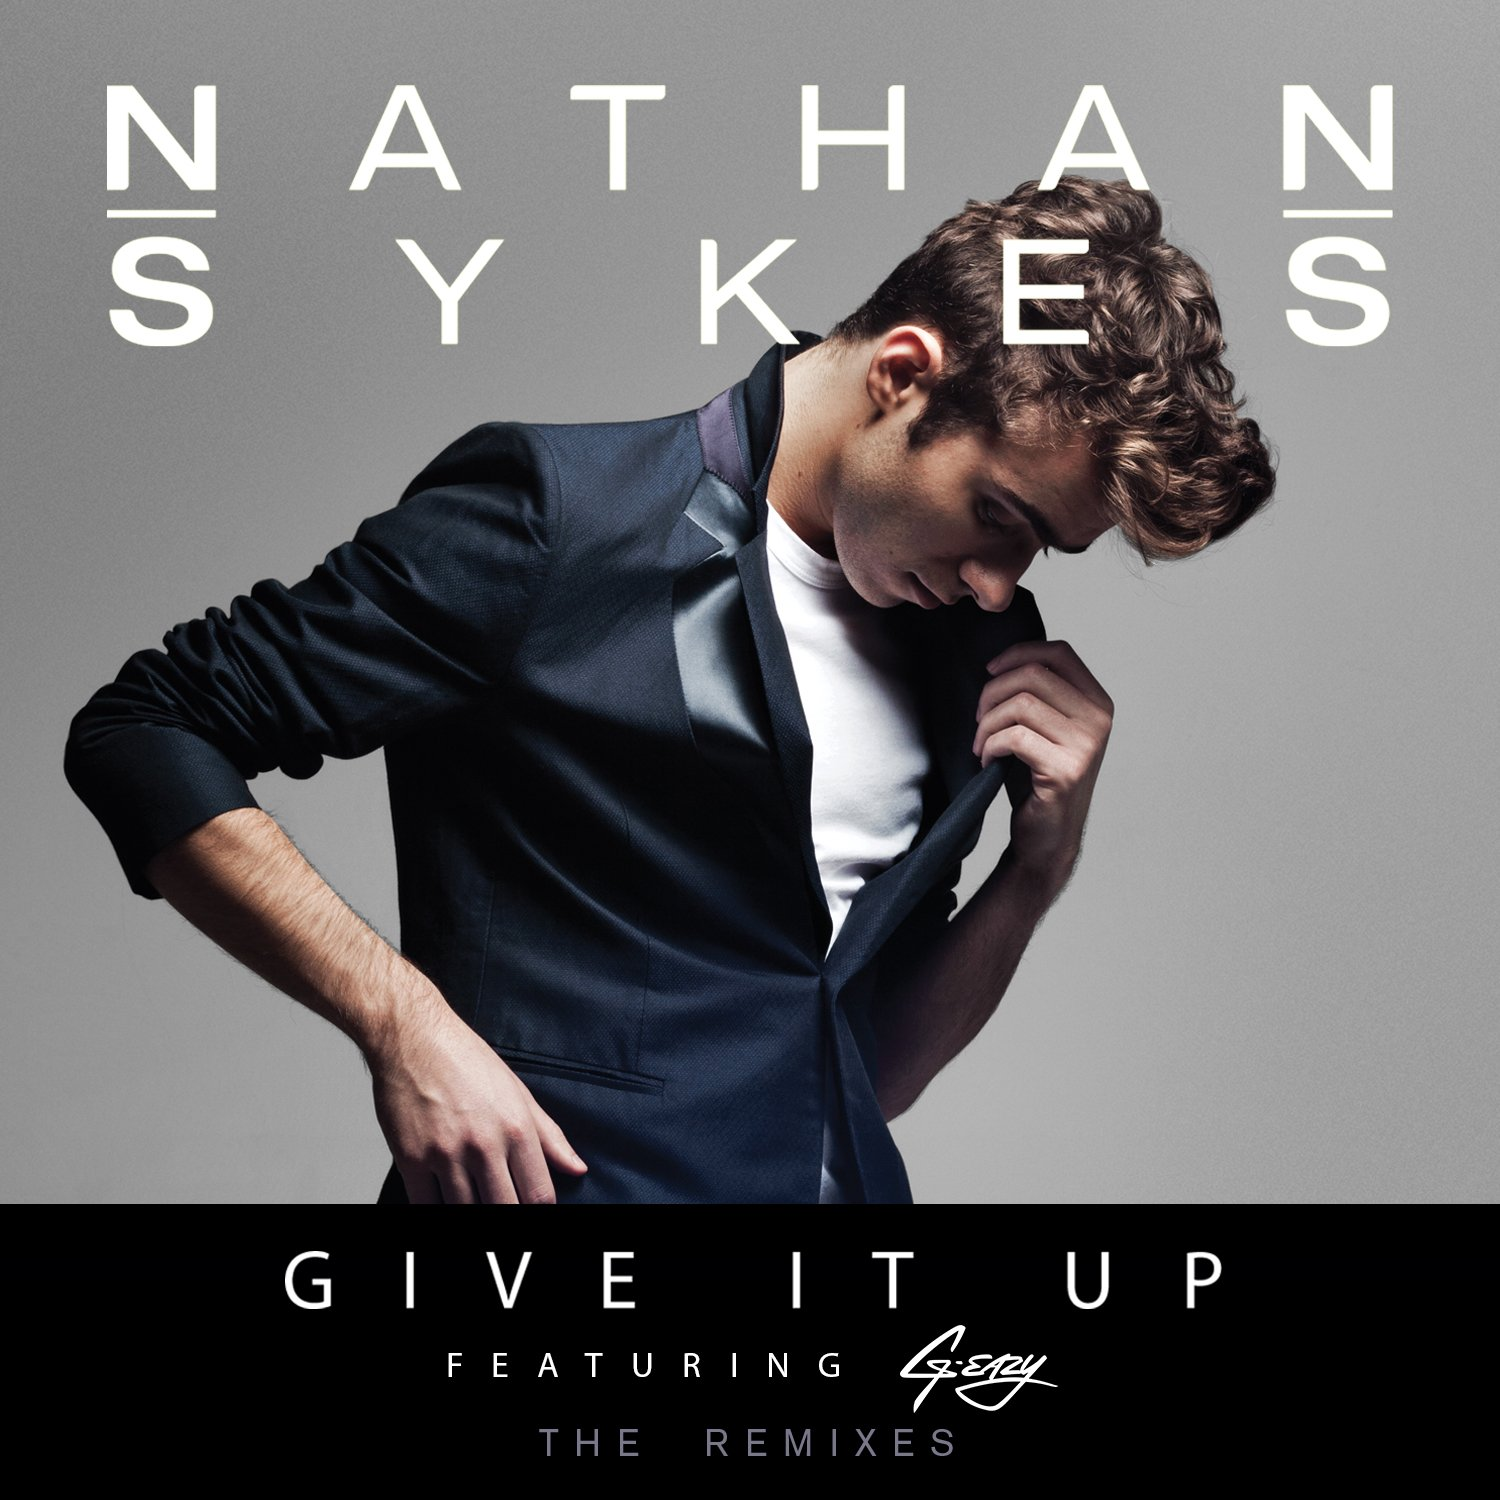 RT @NathanSykesHQ: The perfect day to listen to @NathanSykes incredible new single #GiveItUp!! It's only 59p on iTunes!! https://t.co/uUfHZ…